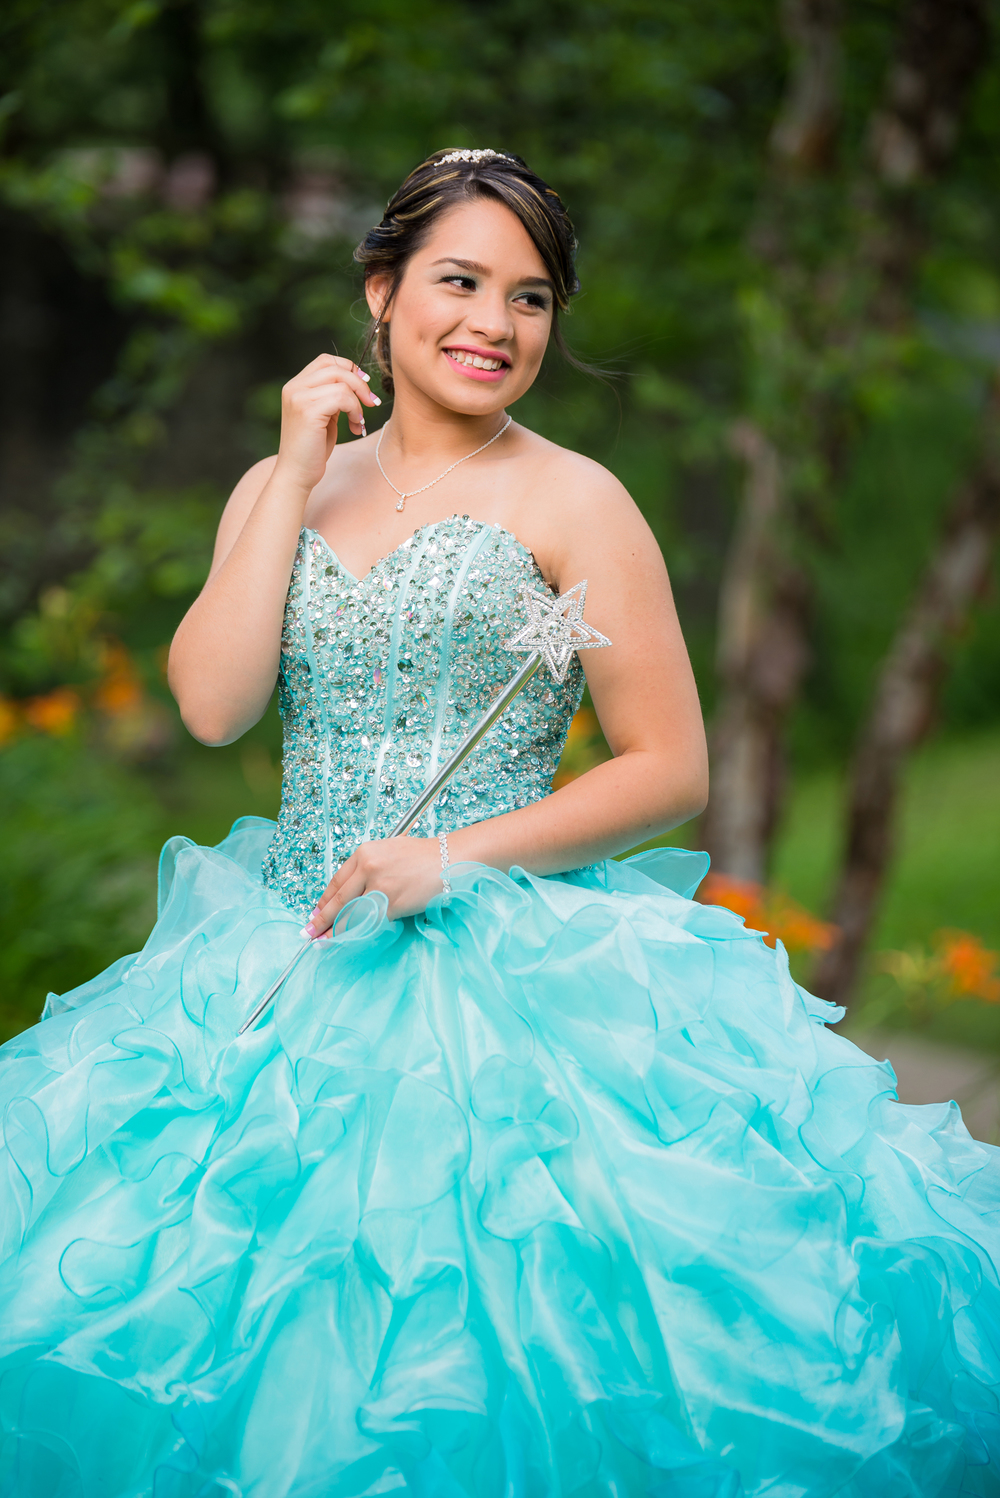 Naomis-Sweet-Fifteen-Garcia-Photography-2111.jpg